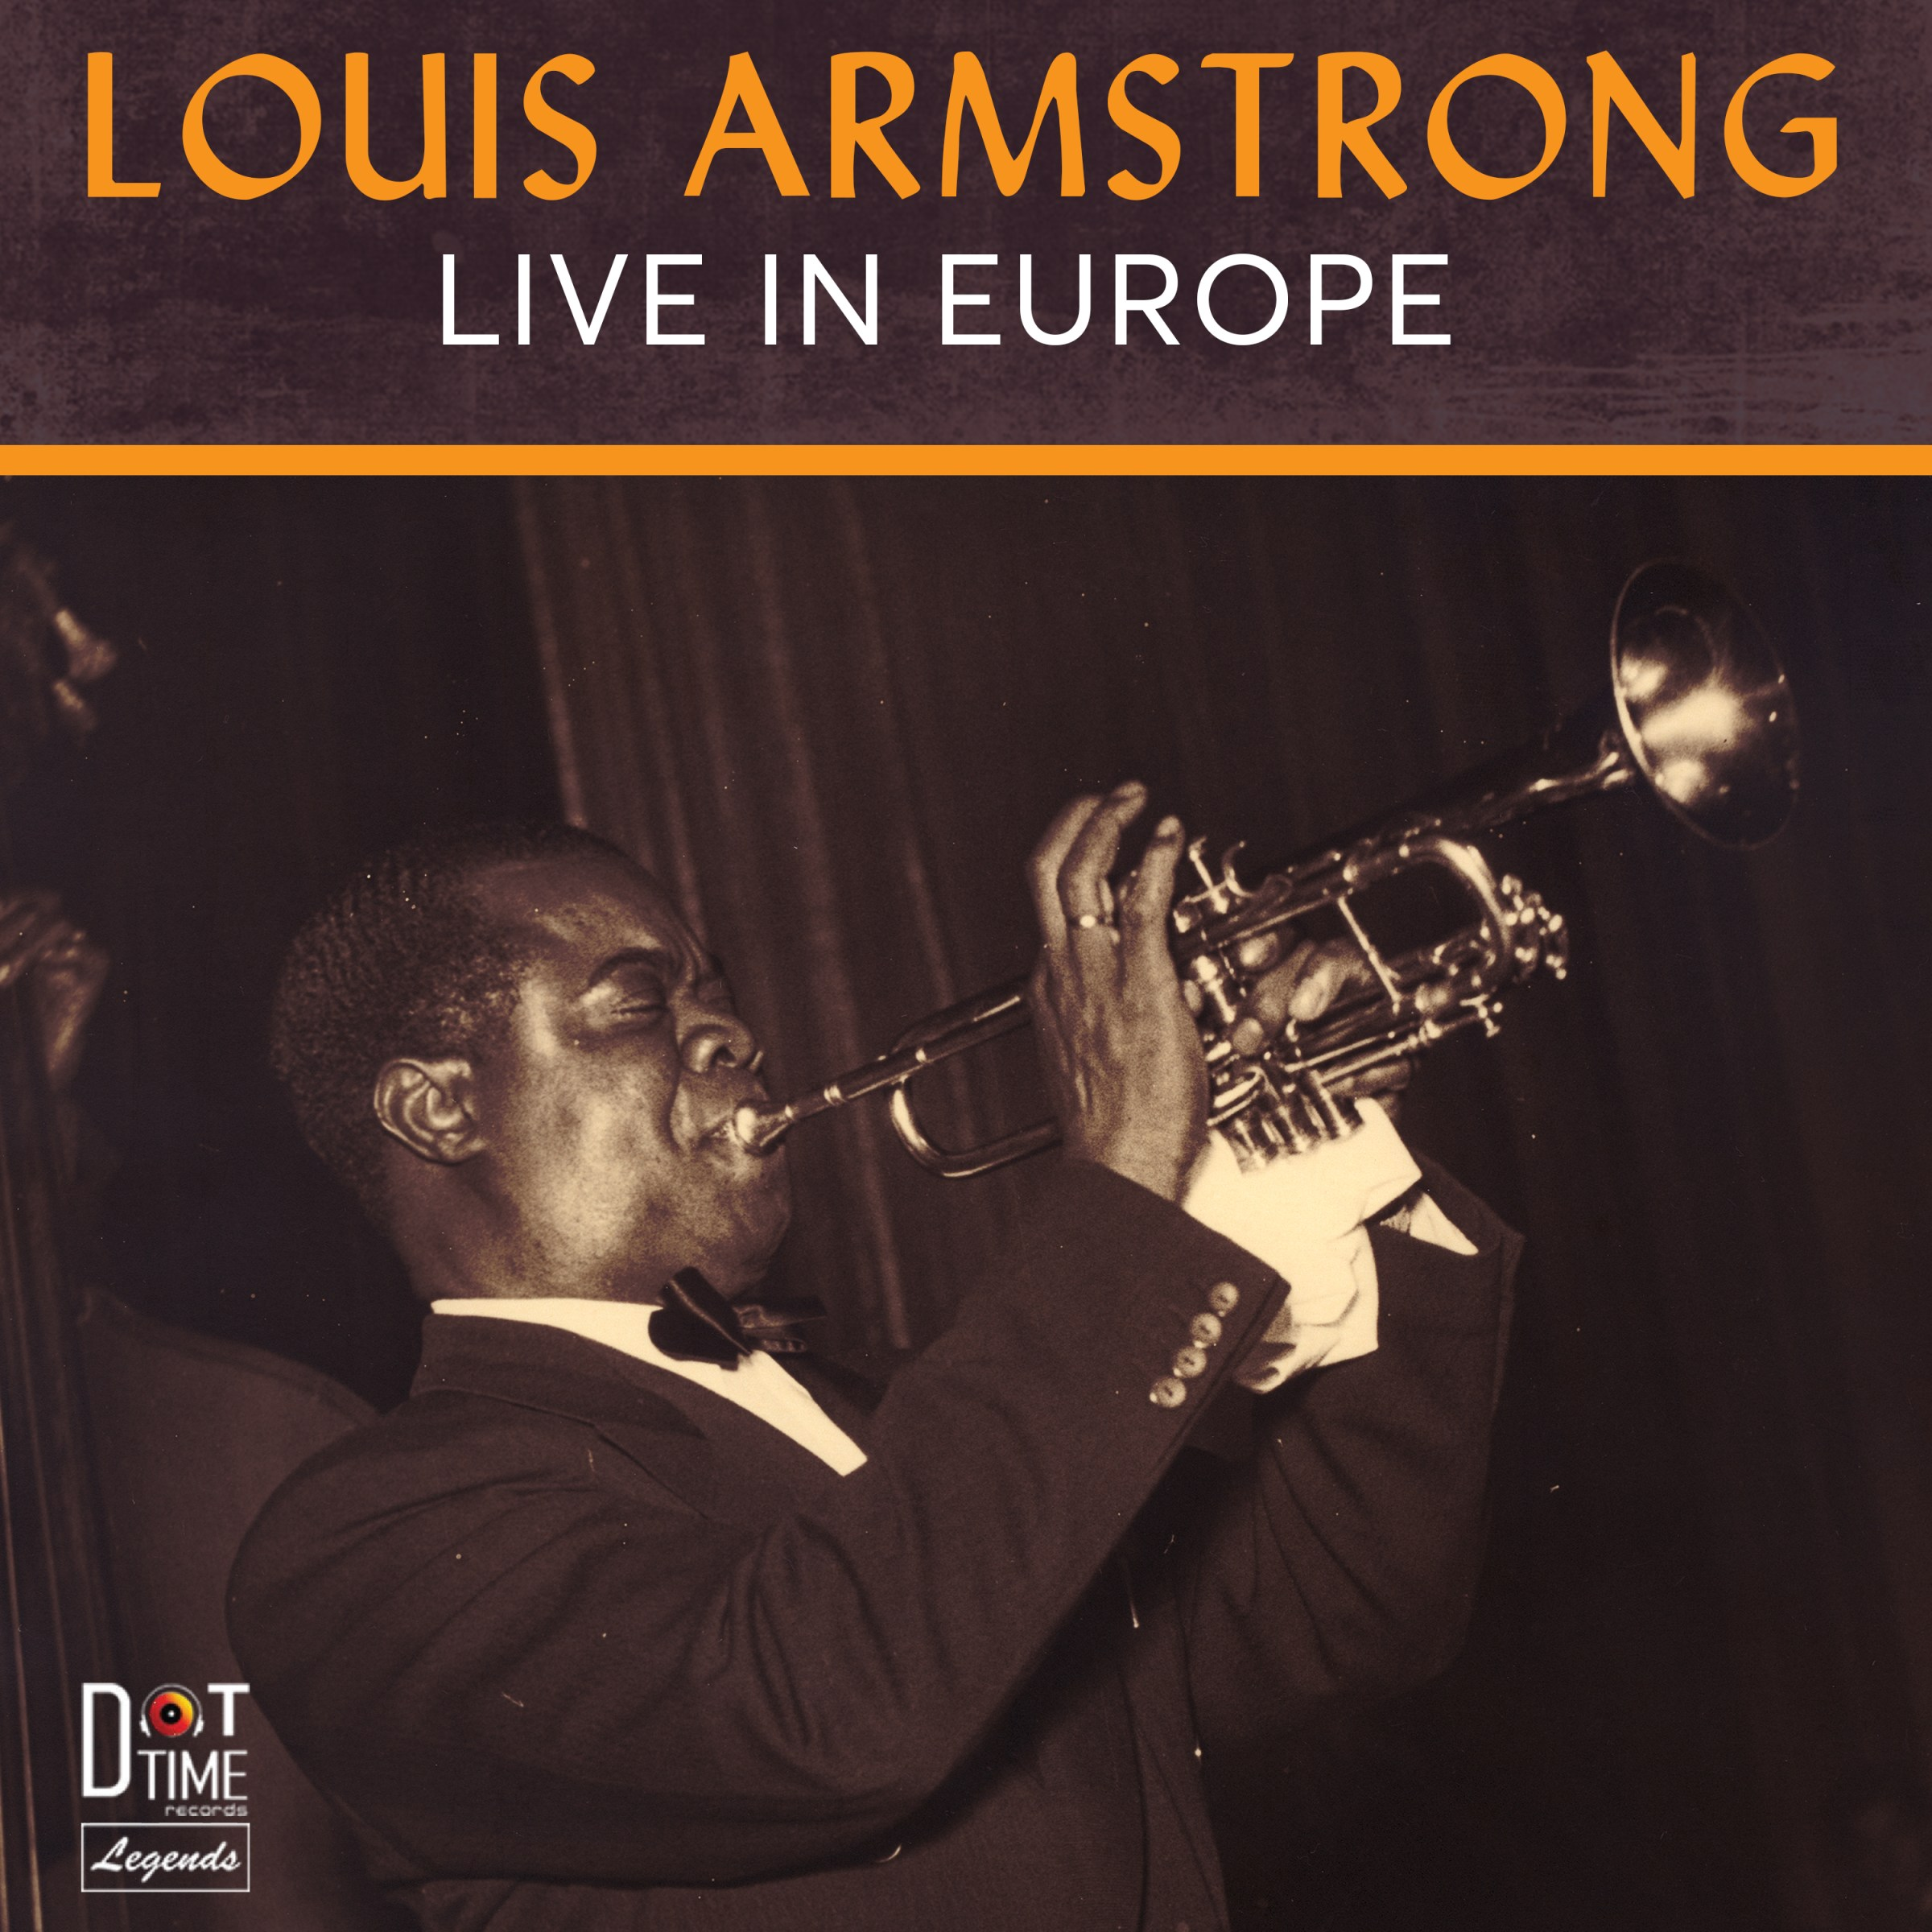 LOUIS ARMSTRONG - Live in Europe cover